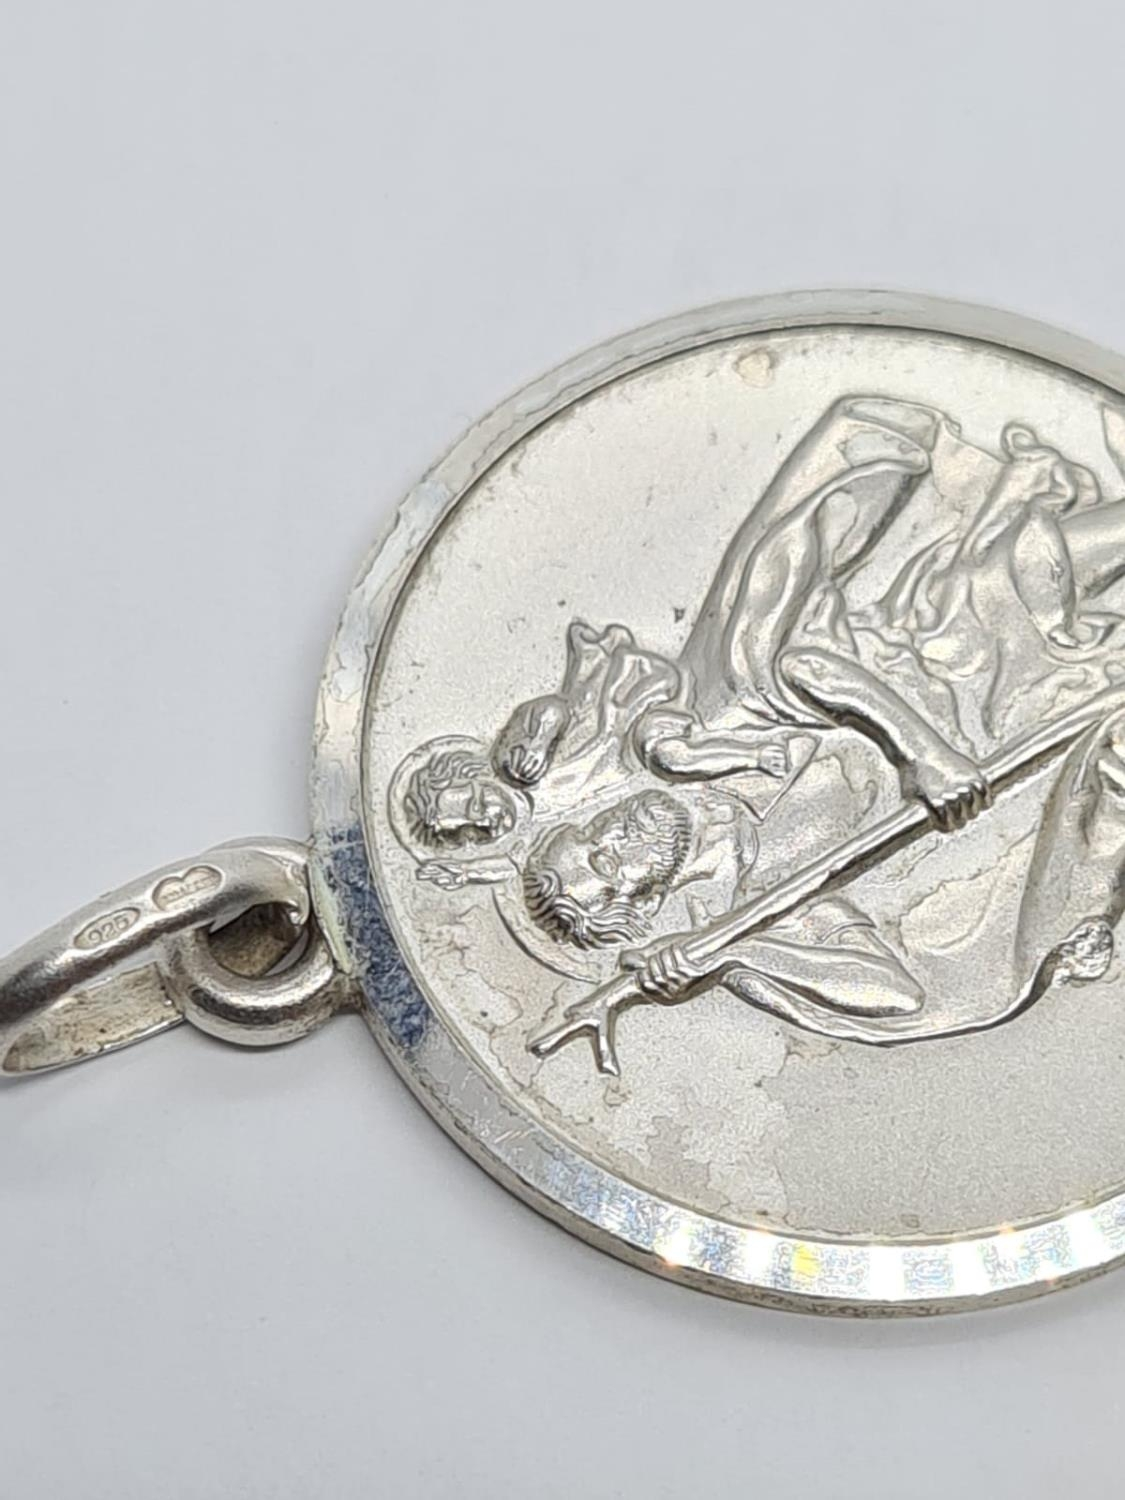 STERLING SILVER LARGE ROUND ST CHRISTOPHER PENDANT WEIGHT 8.5G AND 34MM DIAMETER APPROX - Image 3 of 4